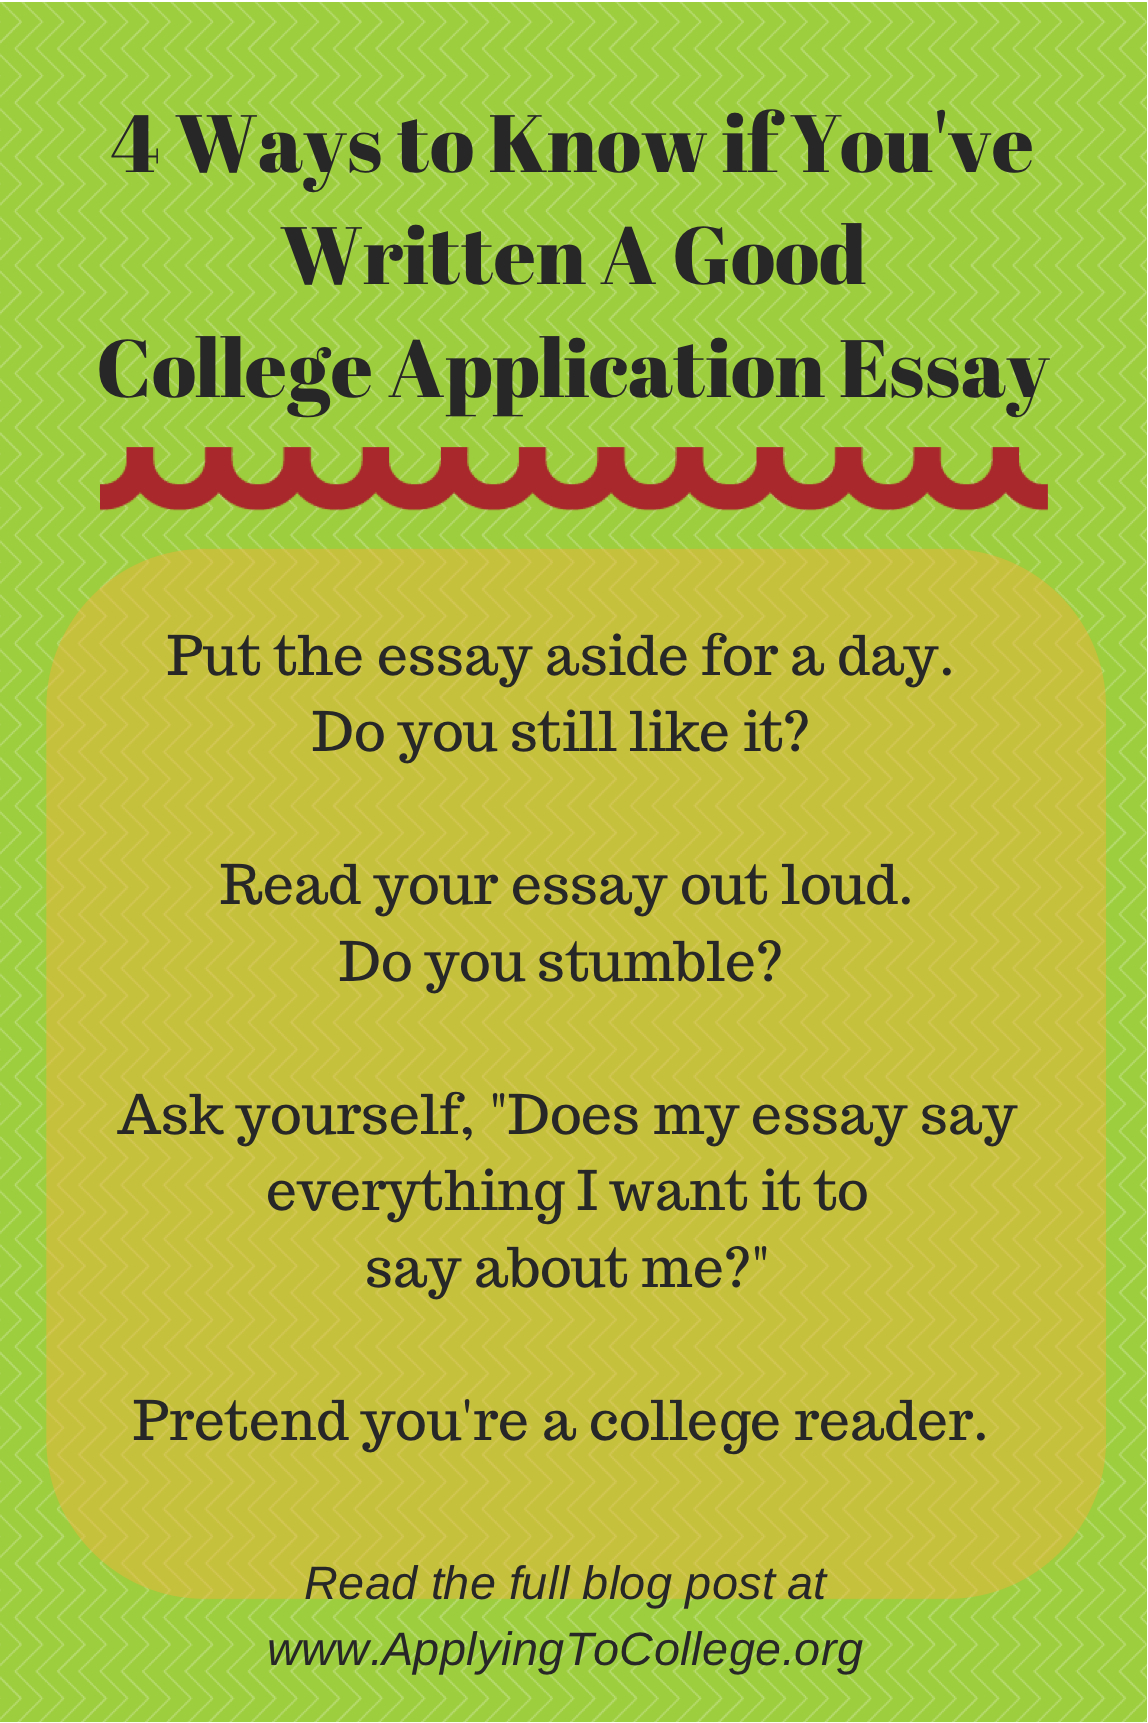 written essays for college Need a service to buy a college essay online we provide outstanding college essay writing help for you of any discipline price starts just at $15 per page.